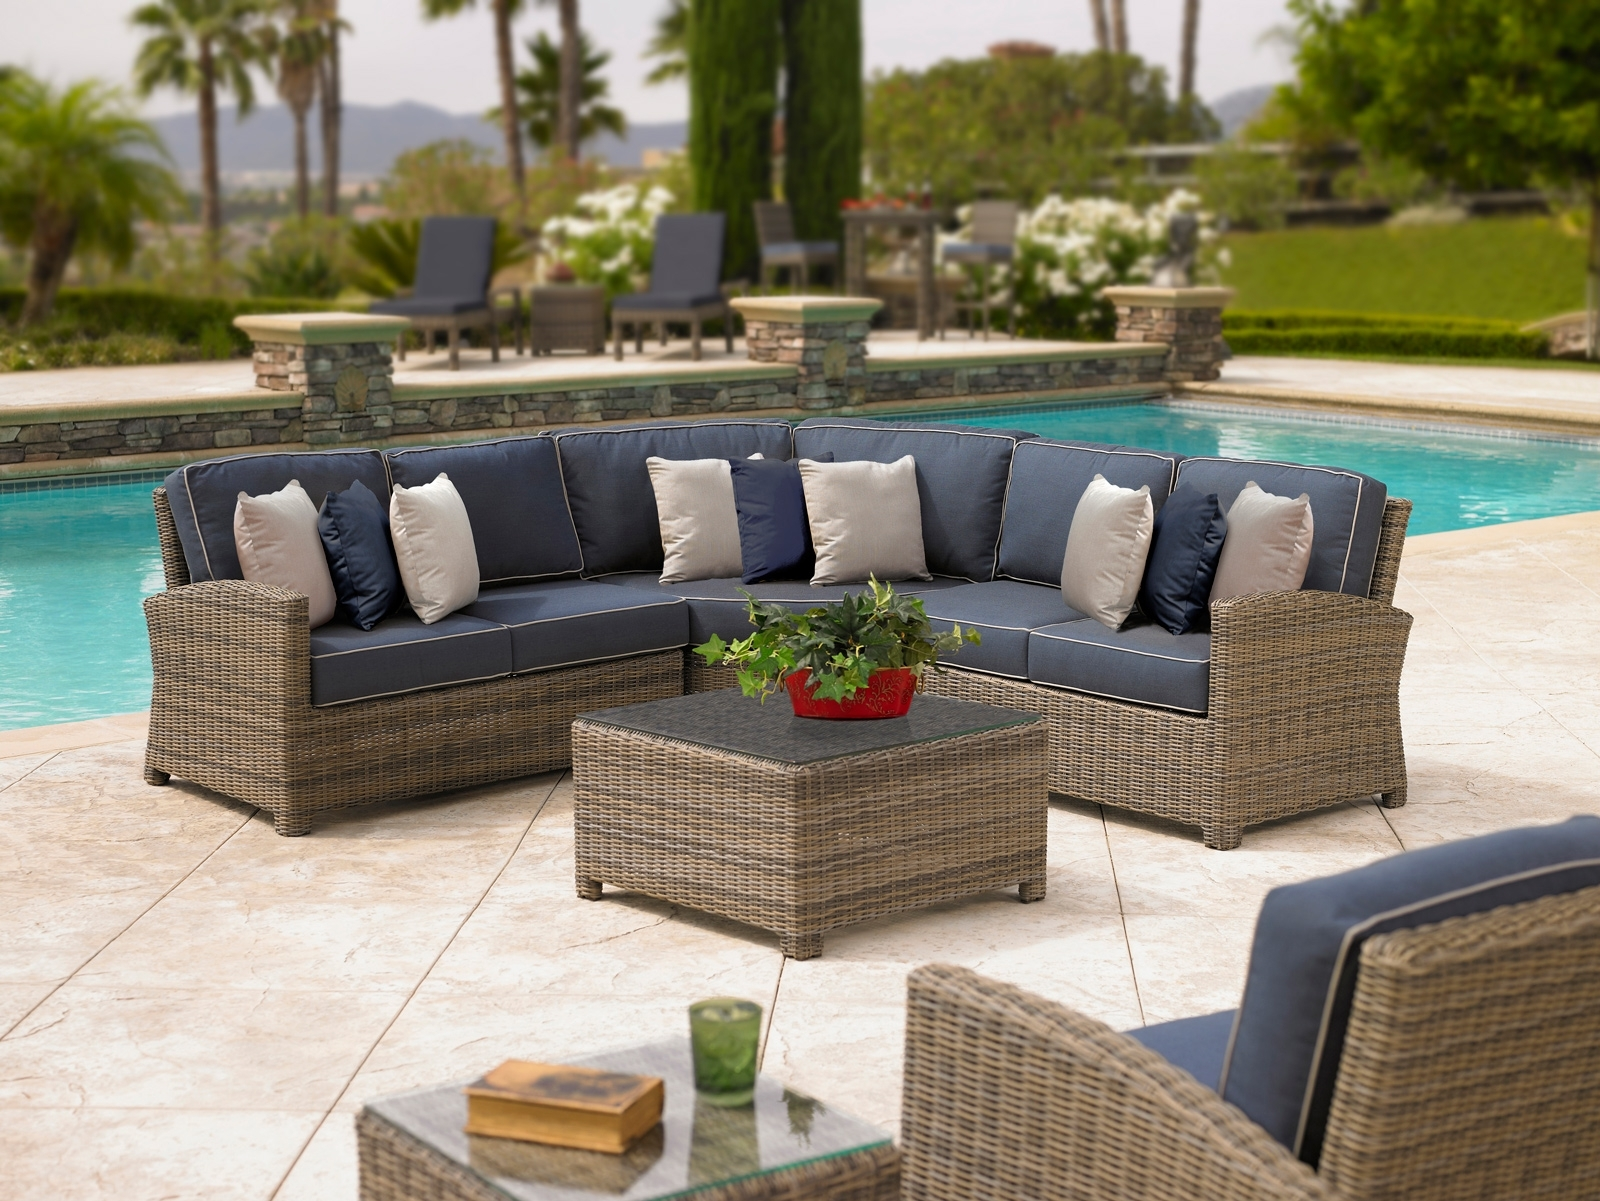 Image of: Catalina Commercial Outdoor Furniture At Low Prices Resort Inside Resort Outdoor Furniture Beautiful Resort Outdoor Furniture